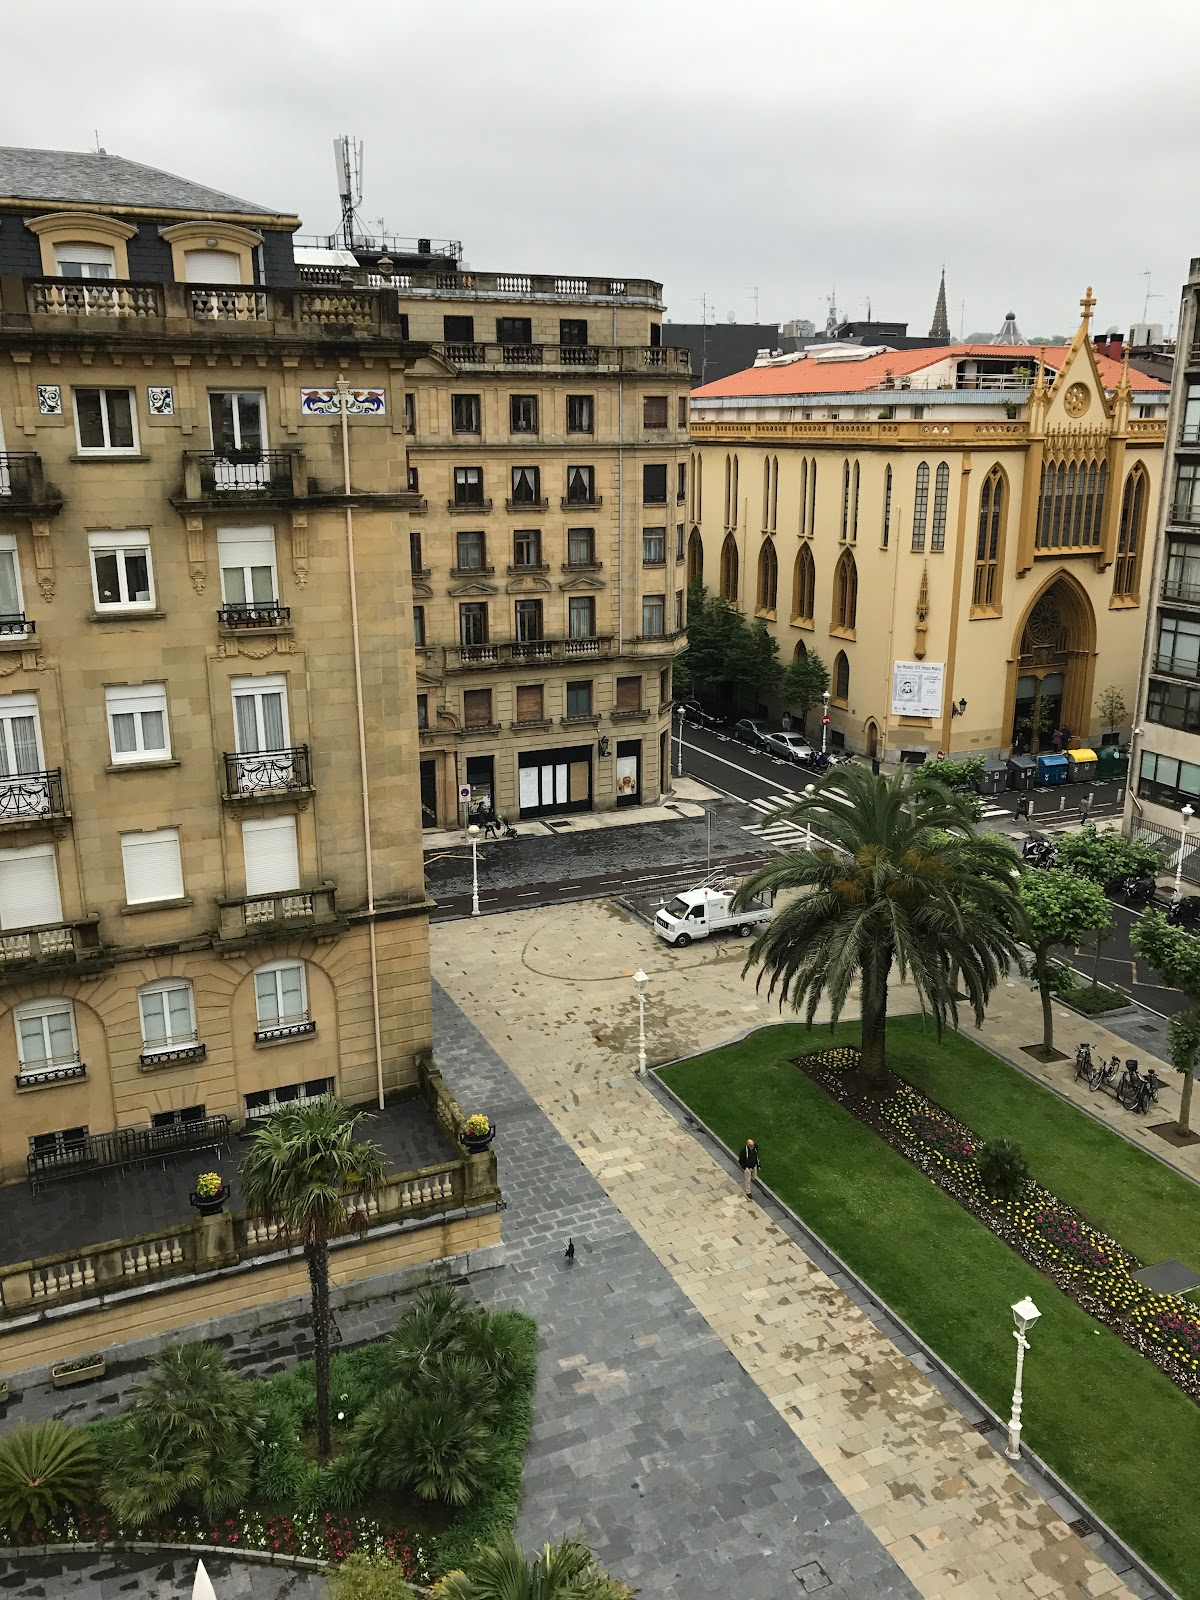 traditional spanish buildings, small square with a palm tree and church in background on a cloudy day. view from maria cristina hotel room in san sebastian spain